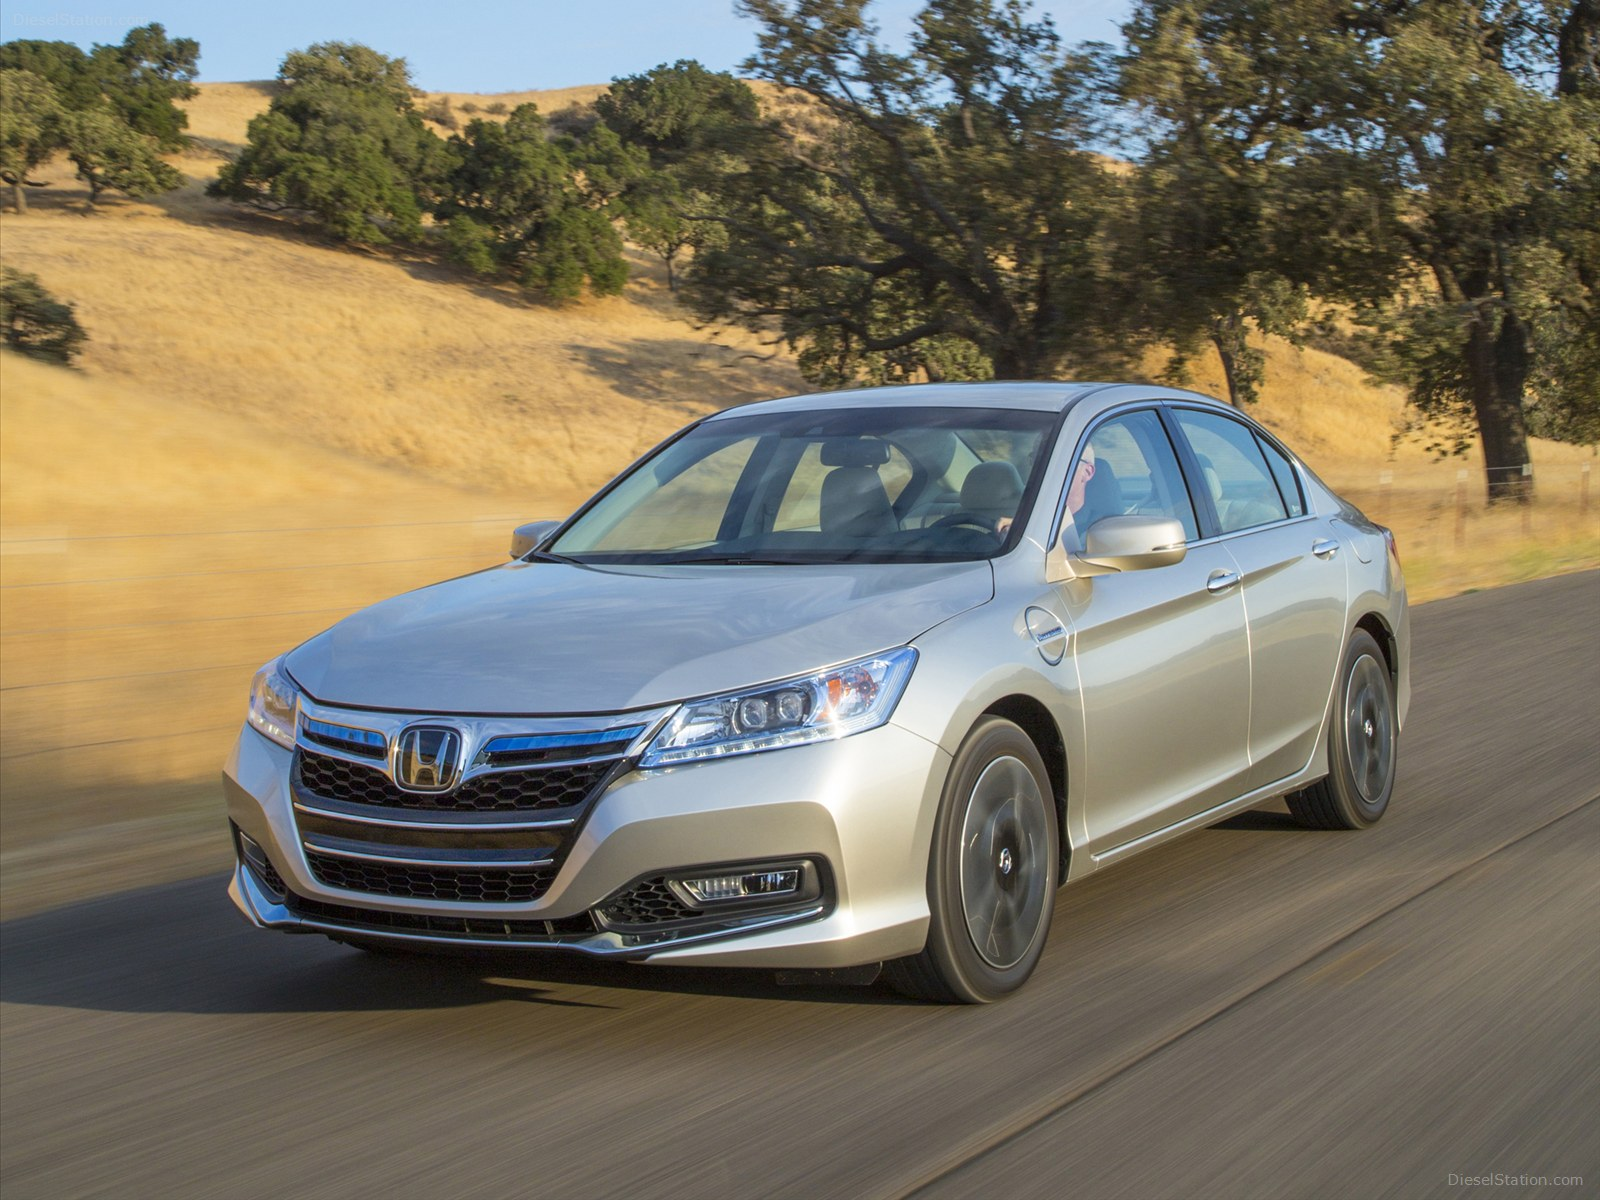 2014 Honda Accord PHEV photo - 1